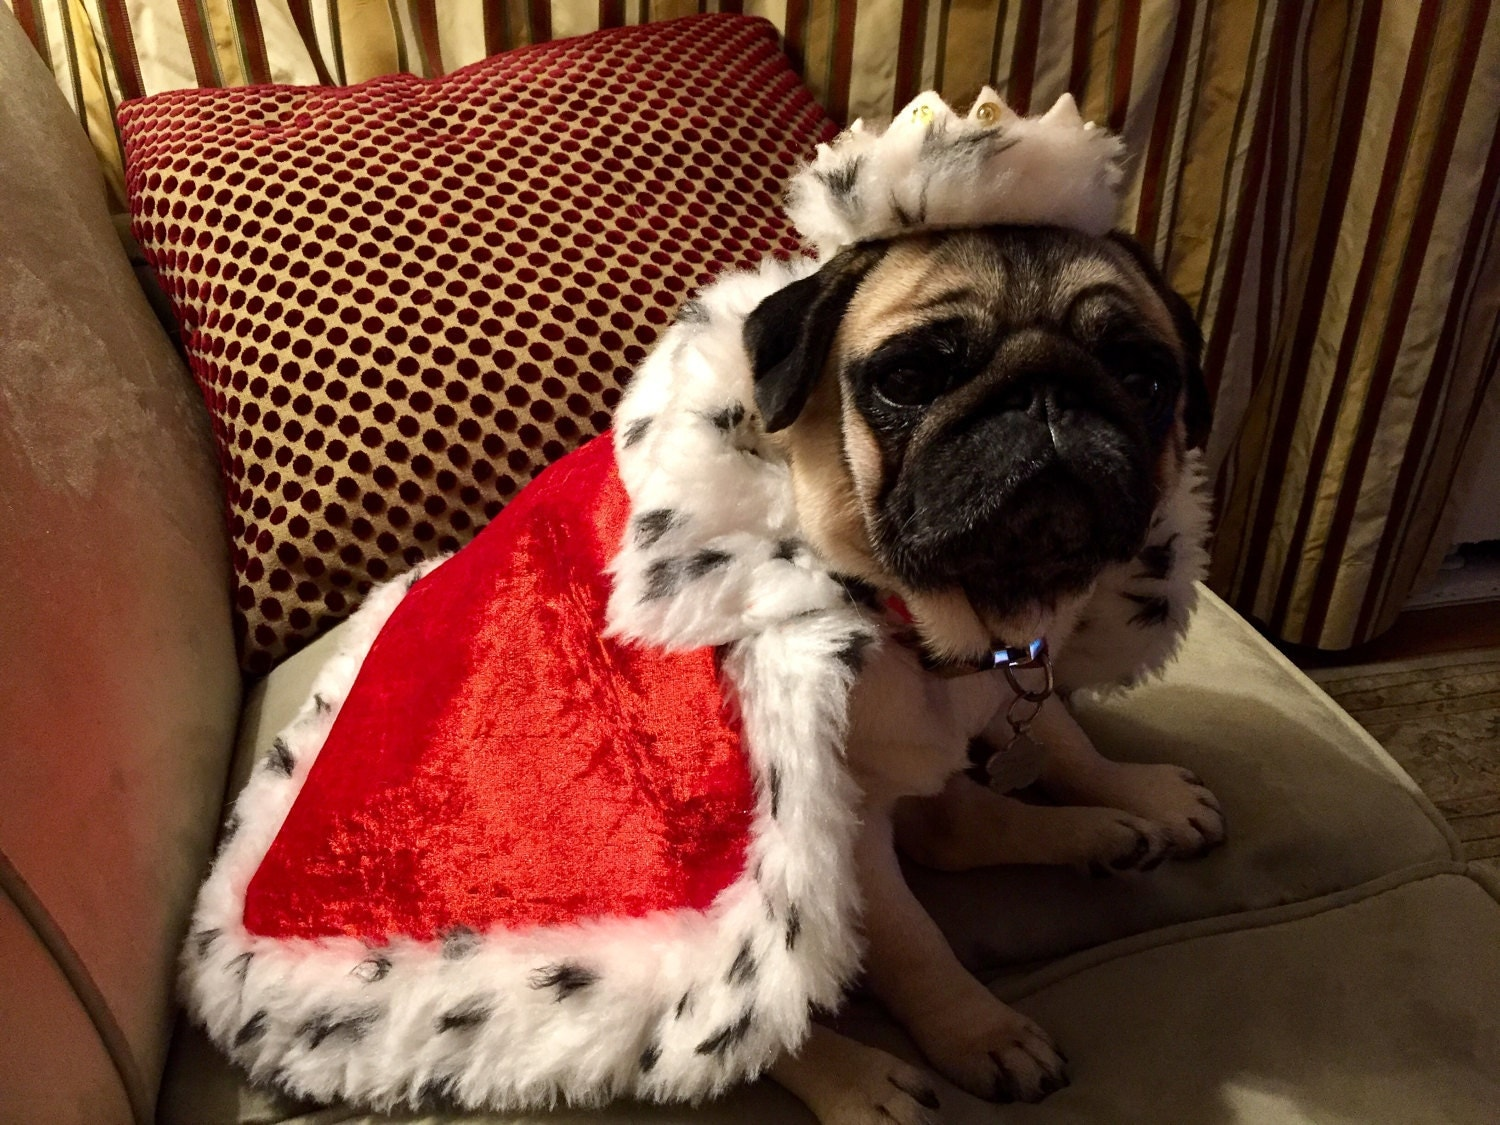 King of the Pugs.